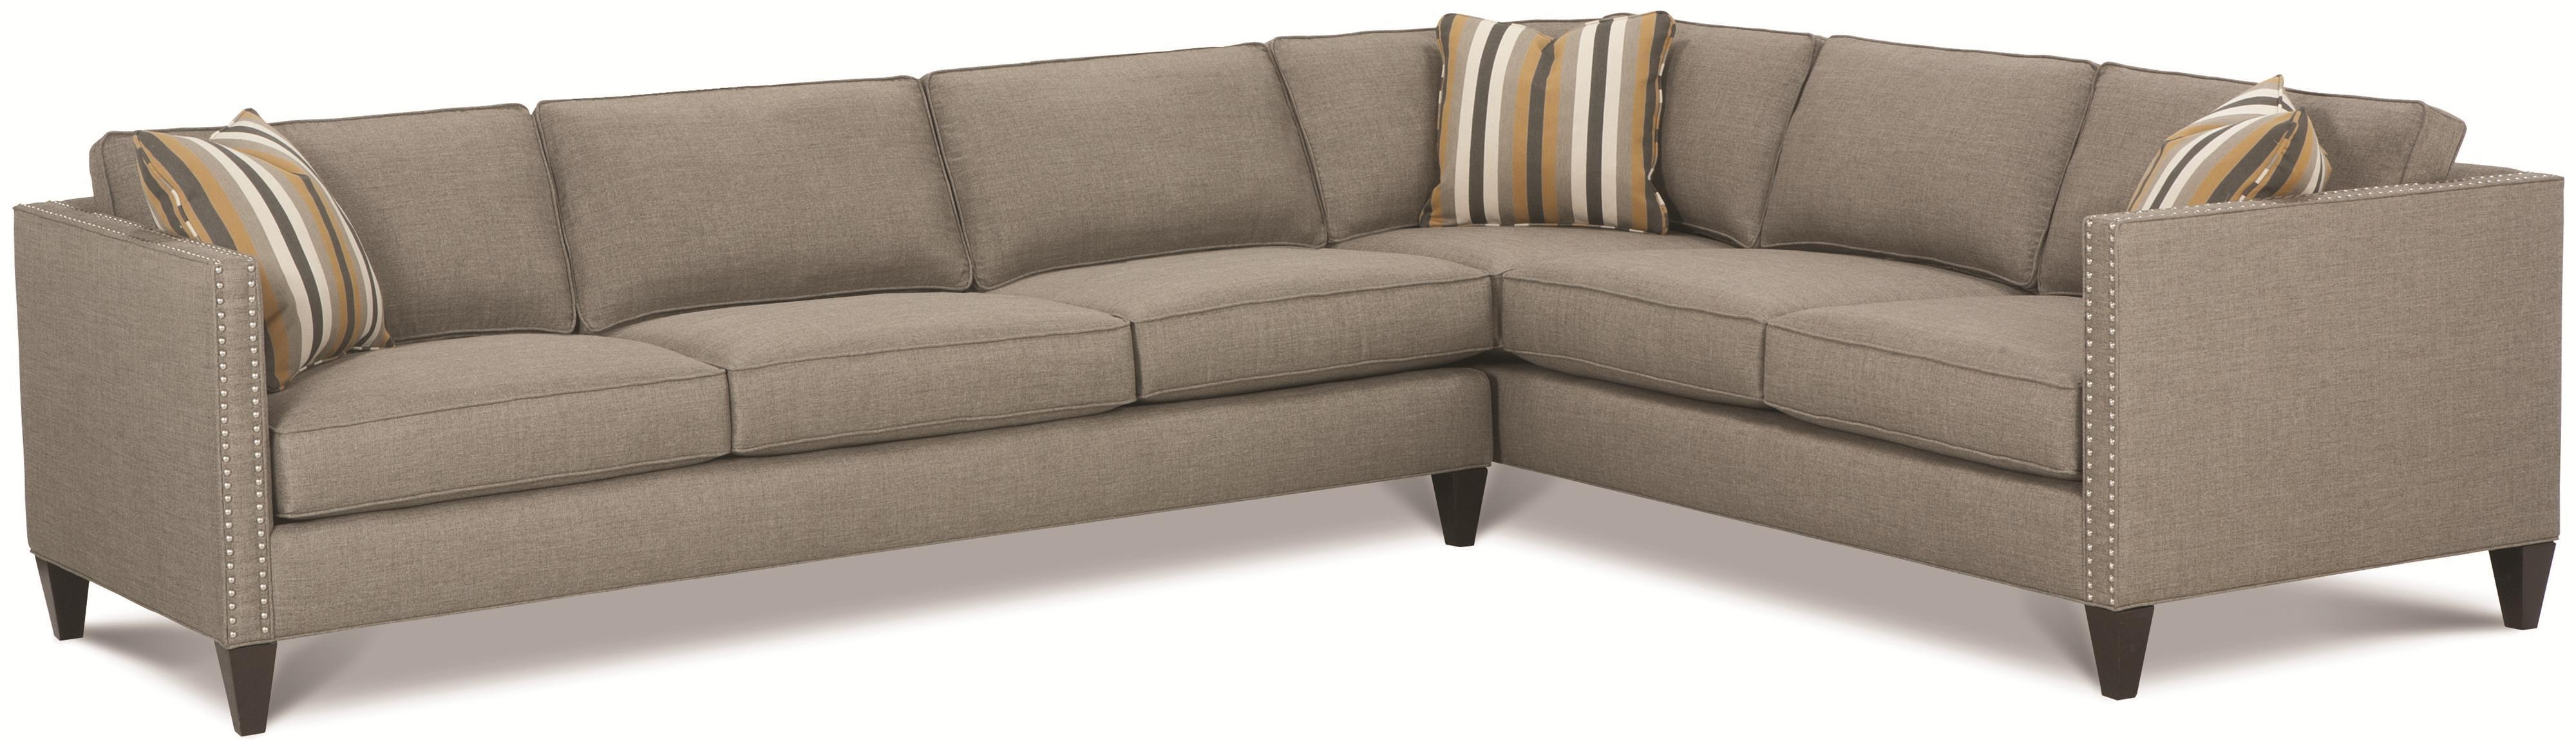 Rowe Mitchell – Rxo <B>Customizable</b> Contemporary Sectional Within Rowe Sectional Sofas (Image 10 of 20)